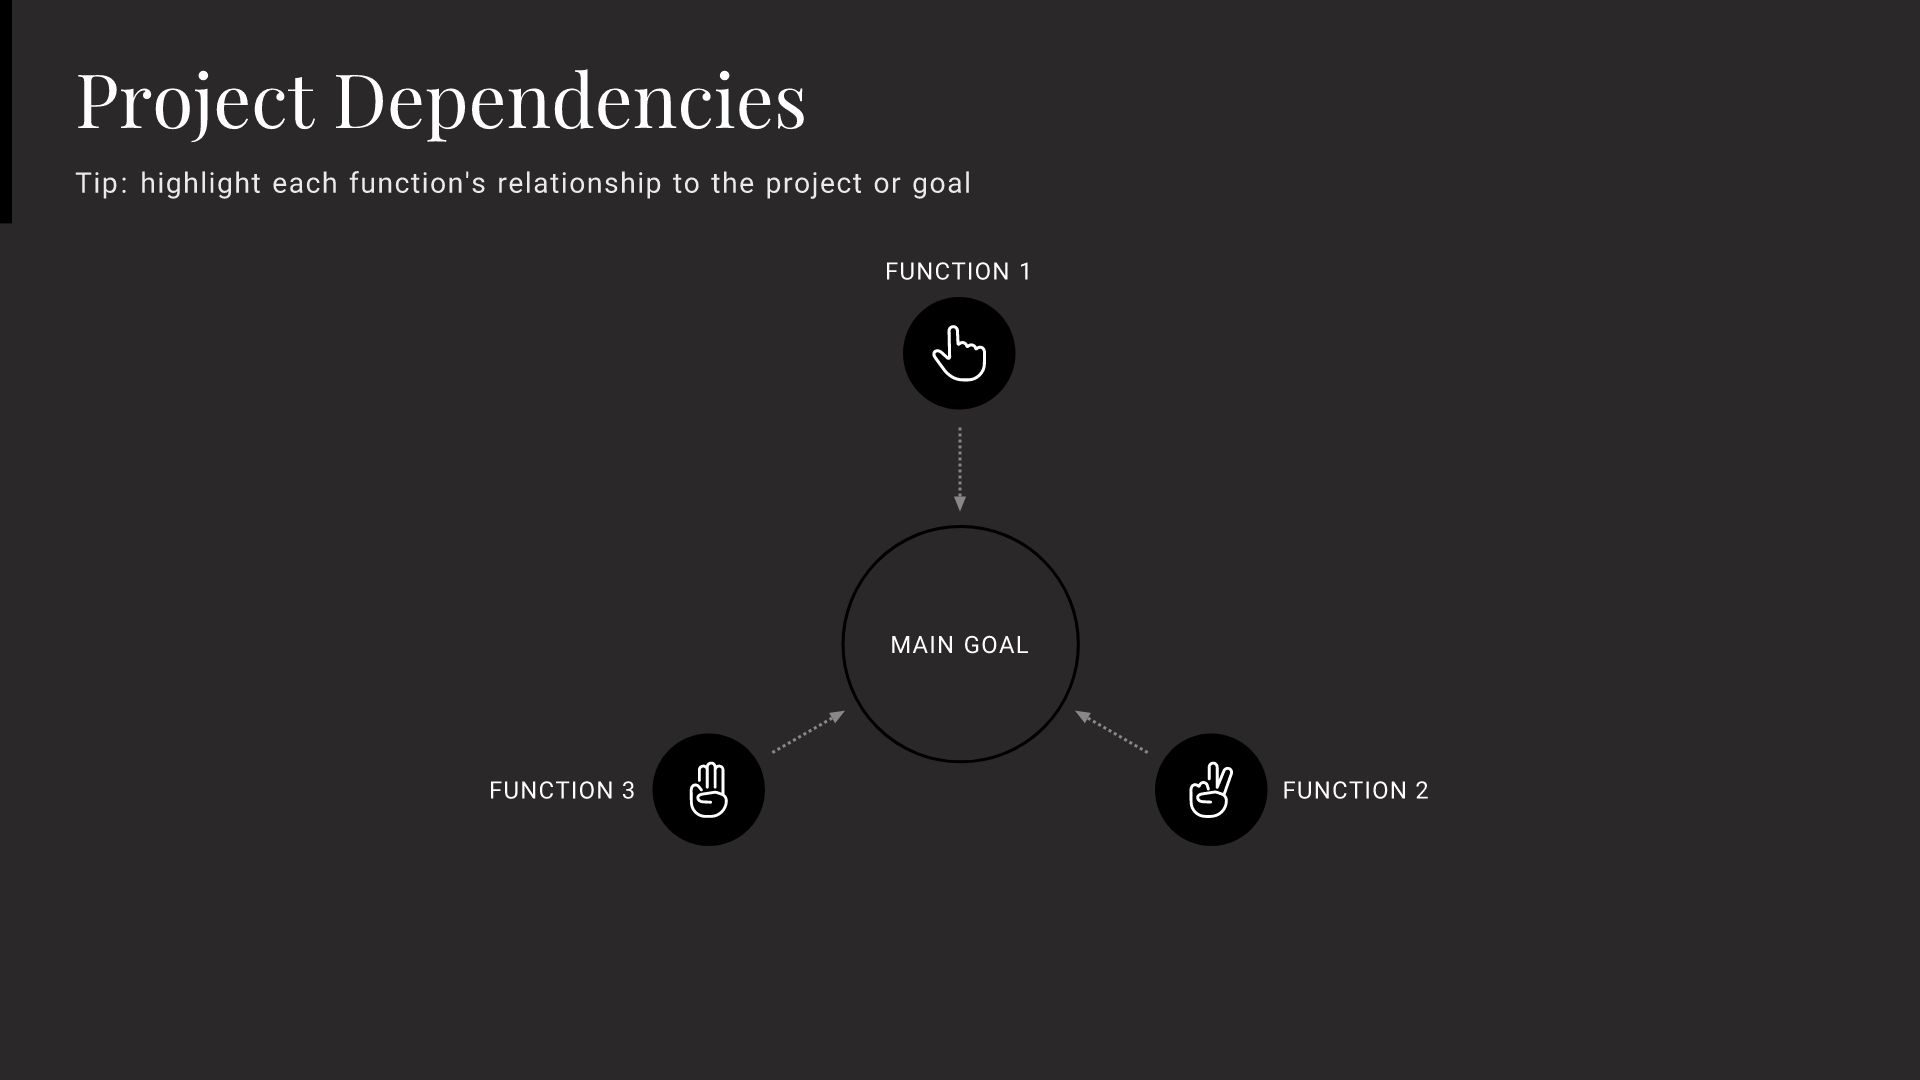 Project Dependencies